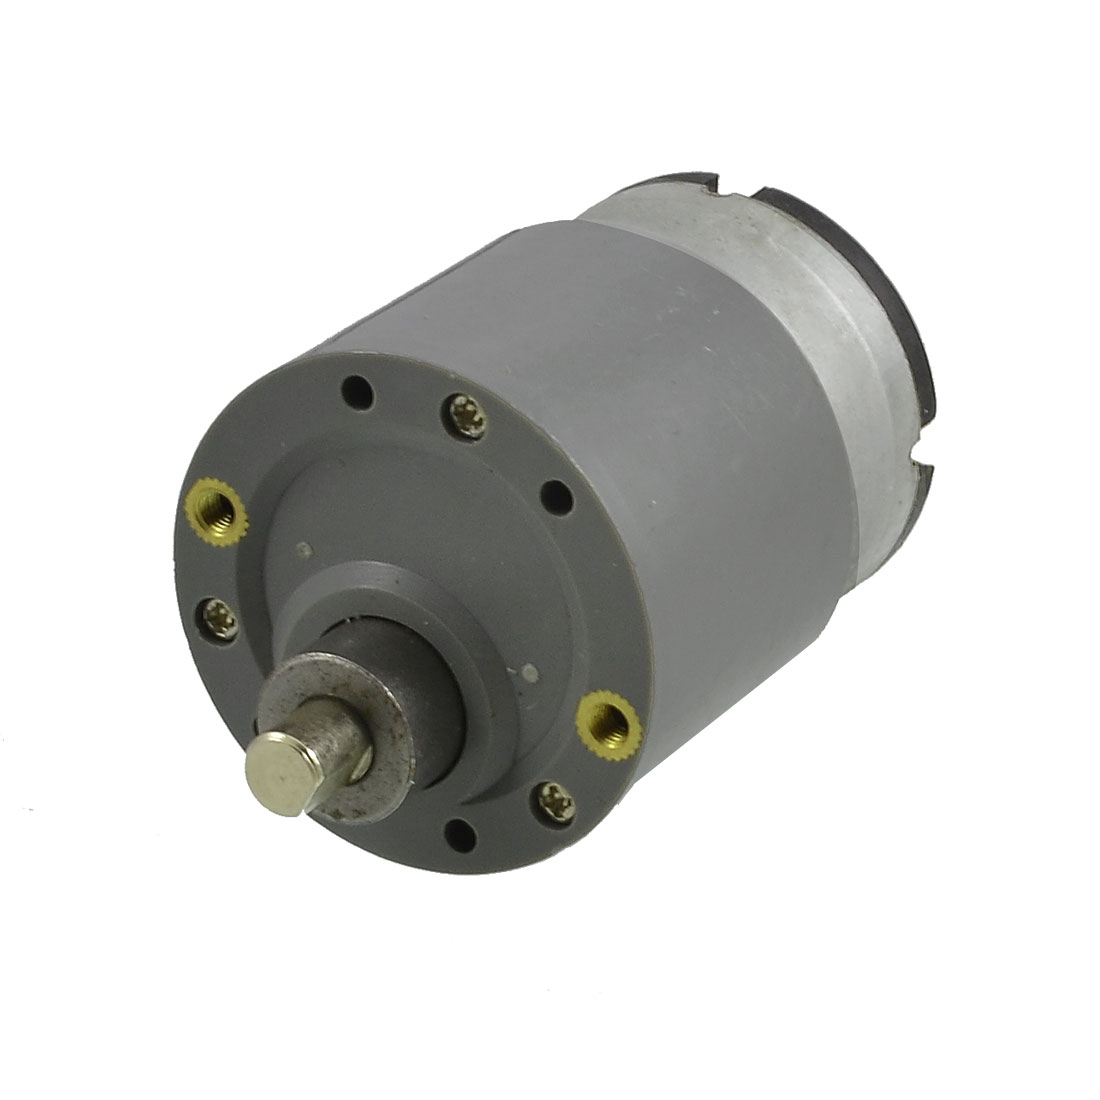 0.2A 12V 70RPM Speed Reducing Gearbox DC Motor for Electrical Tools